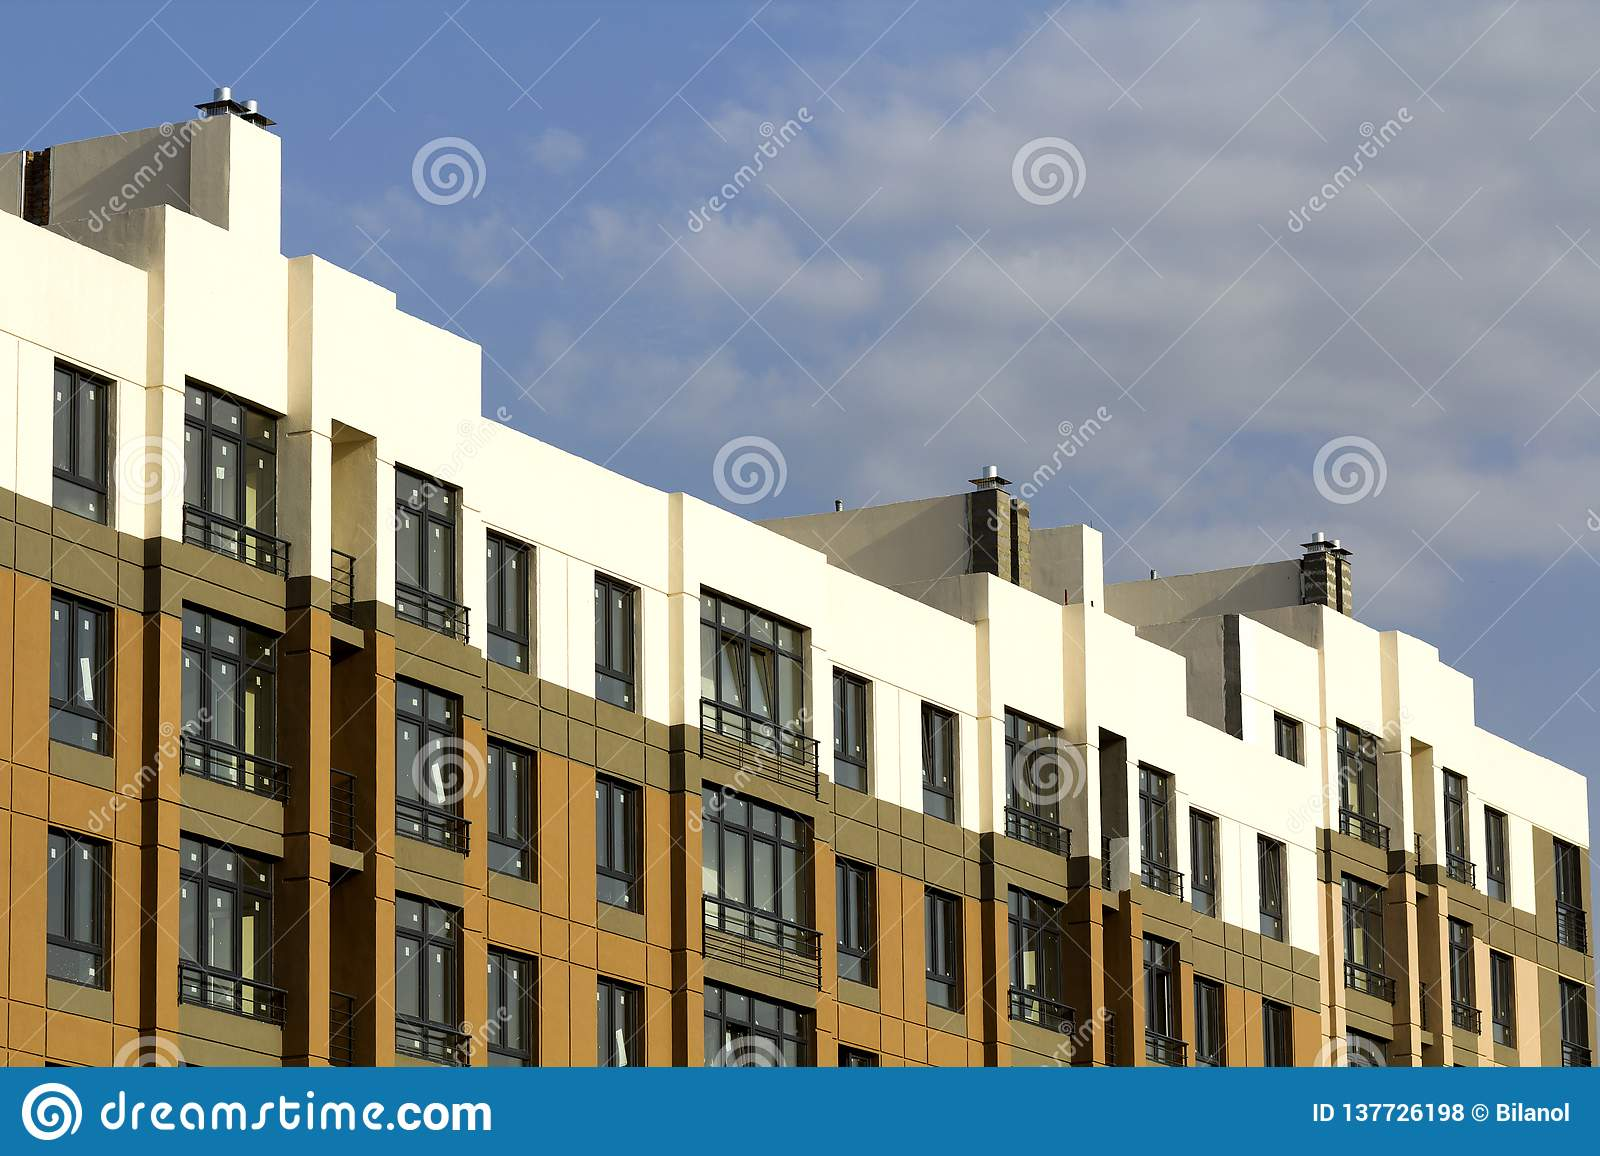 Condominium or modern apartment building with symmetrical architecture in the city downtown. Real estate development and urban